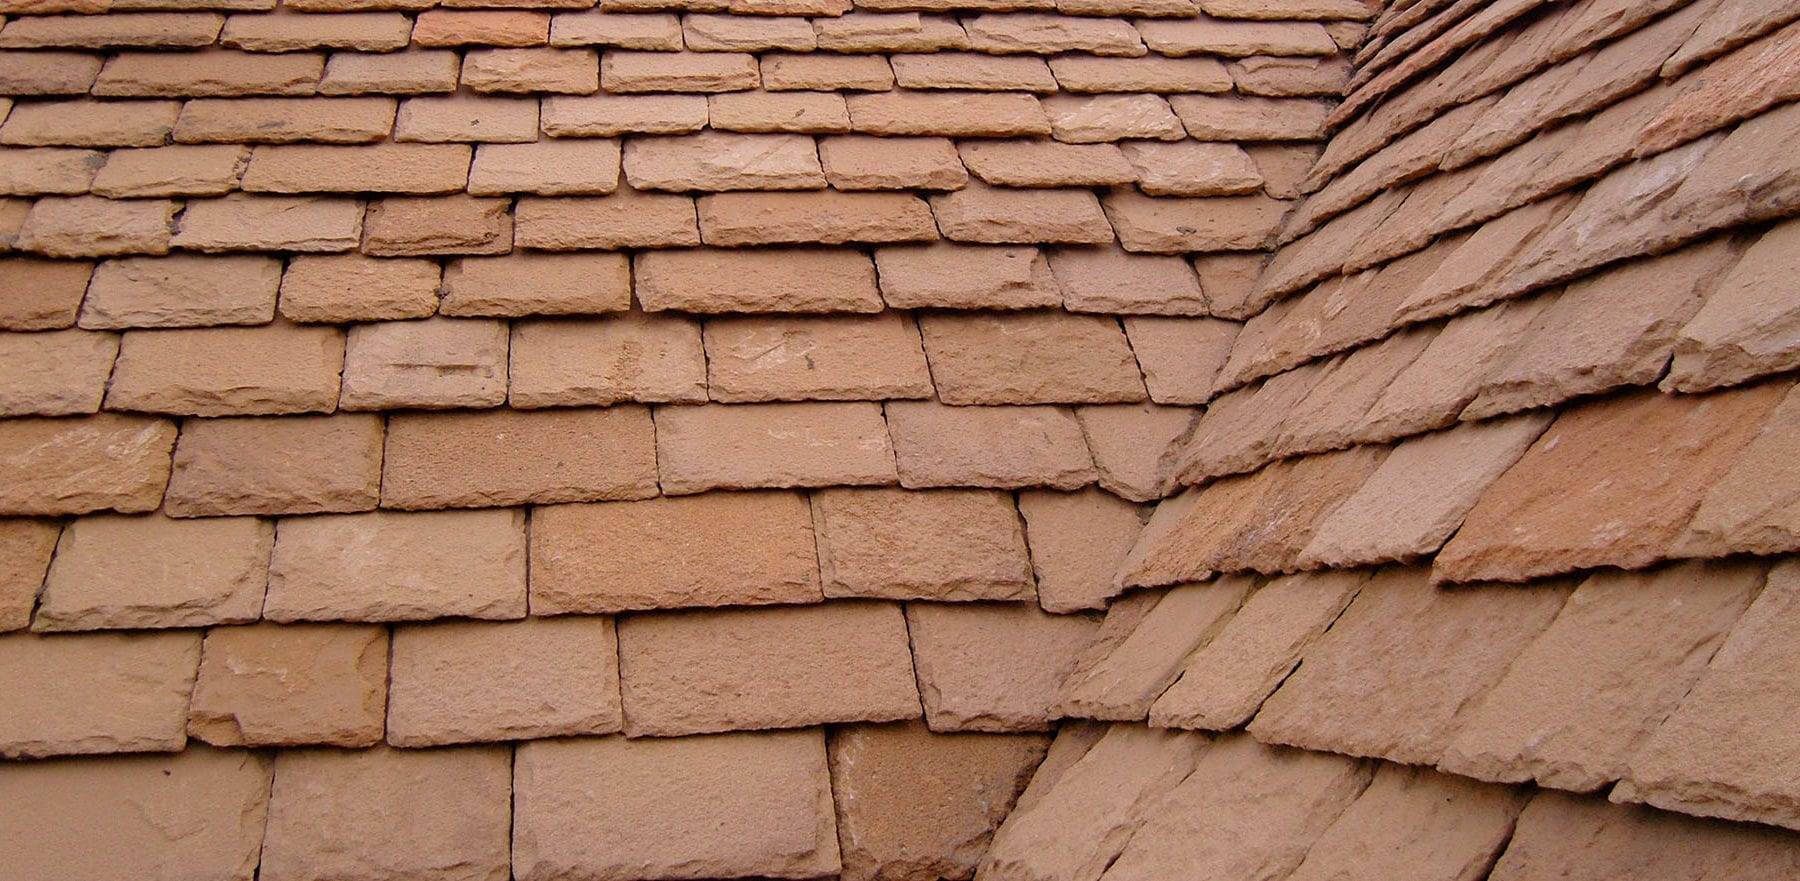 Lifestiles - Natural Stone Roof Tiles - Stroud, England 4